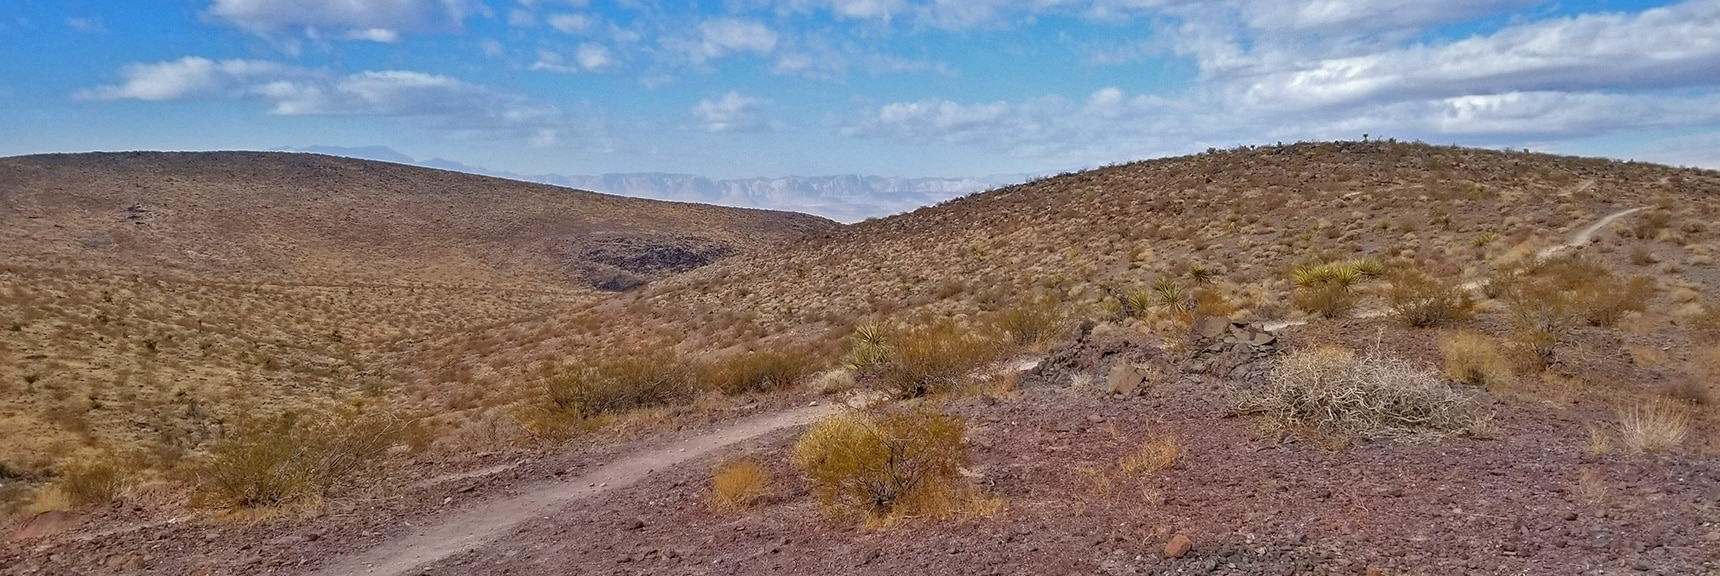 Looking Toward Anthem and Across the Las Vegas Valley to Rainbow Mountains and Red Rock Park  McCullough Hills Trail in Sloan Canyon National Conservation Area, Nevada